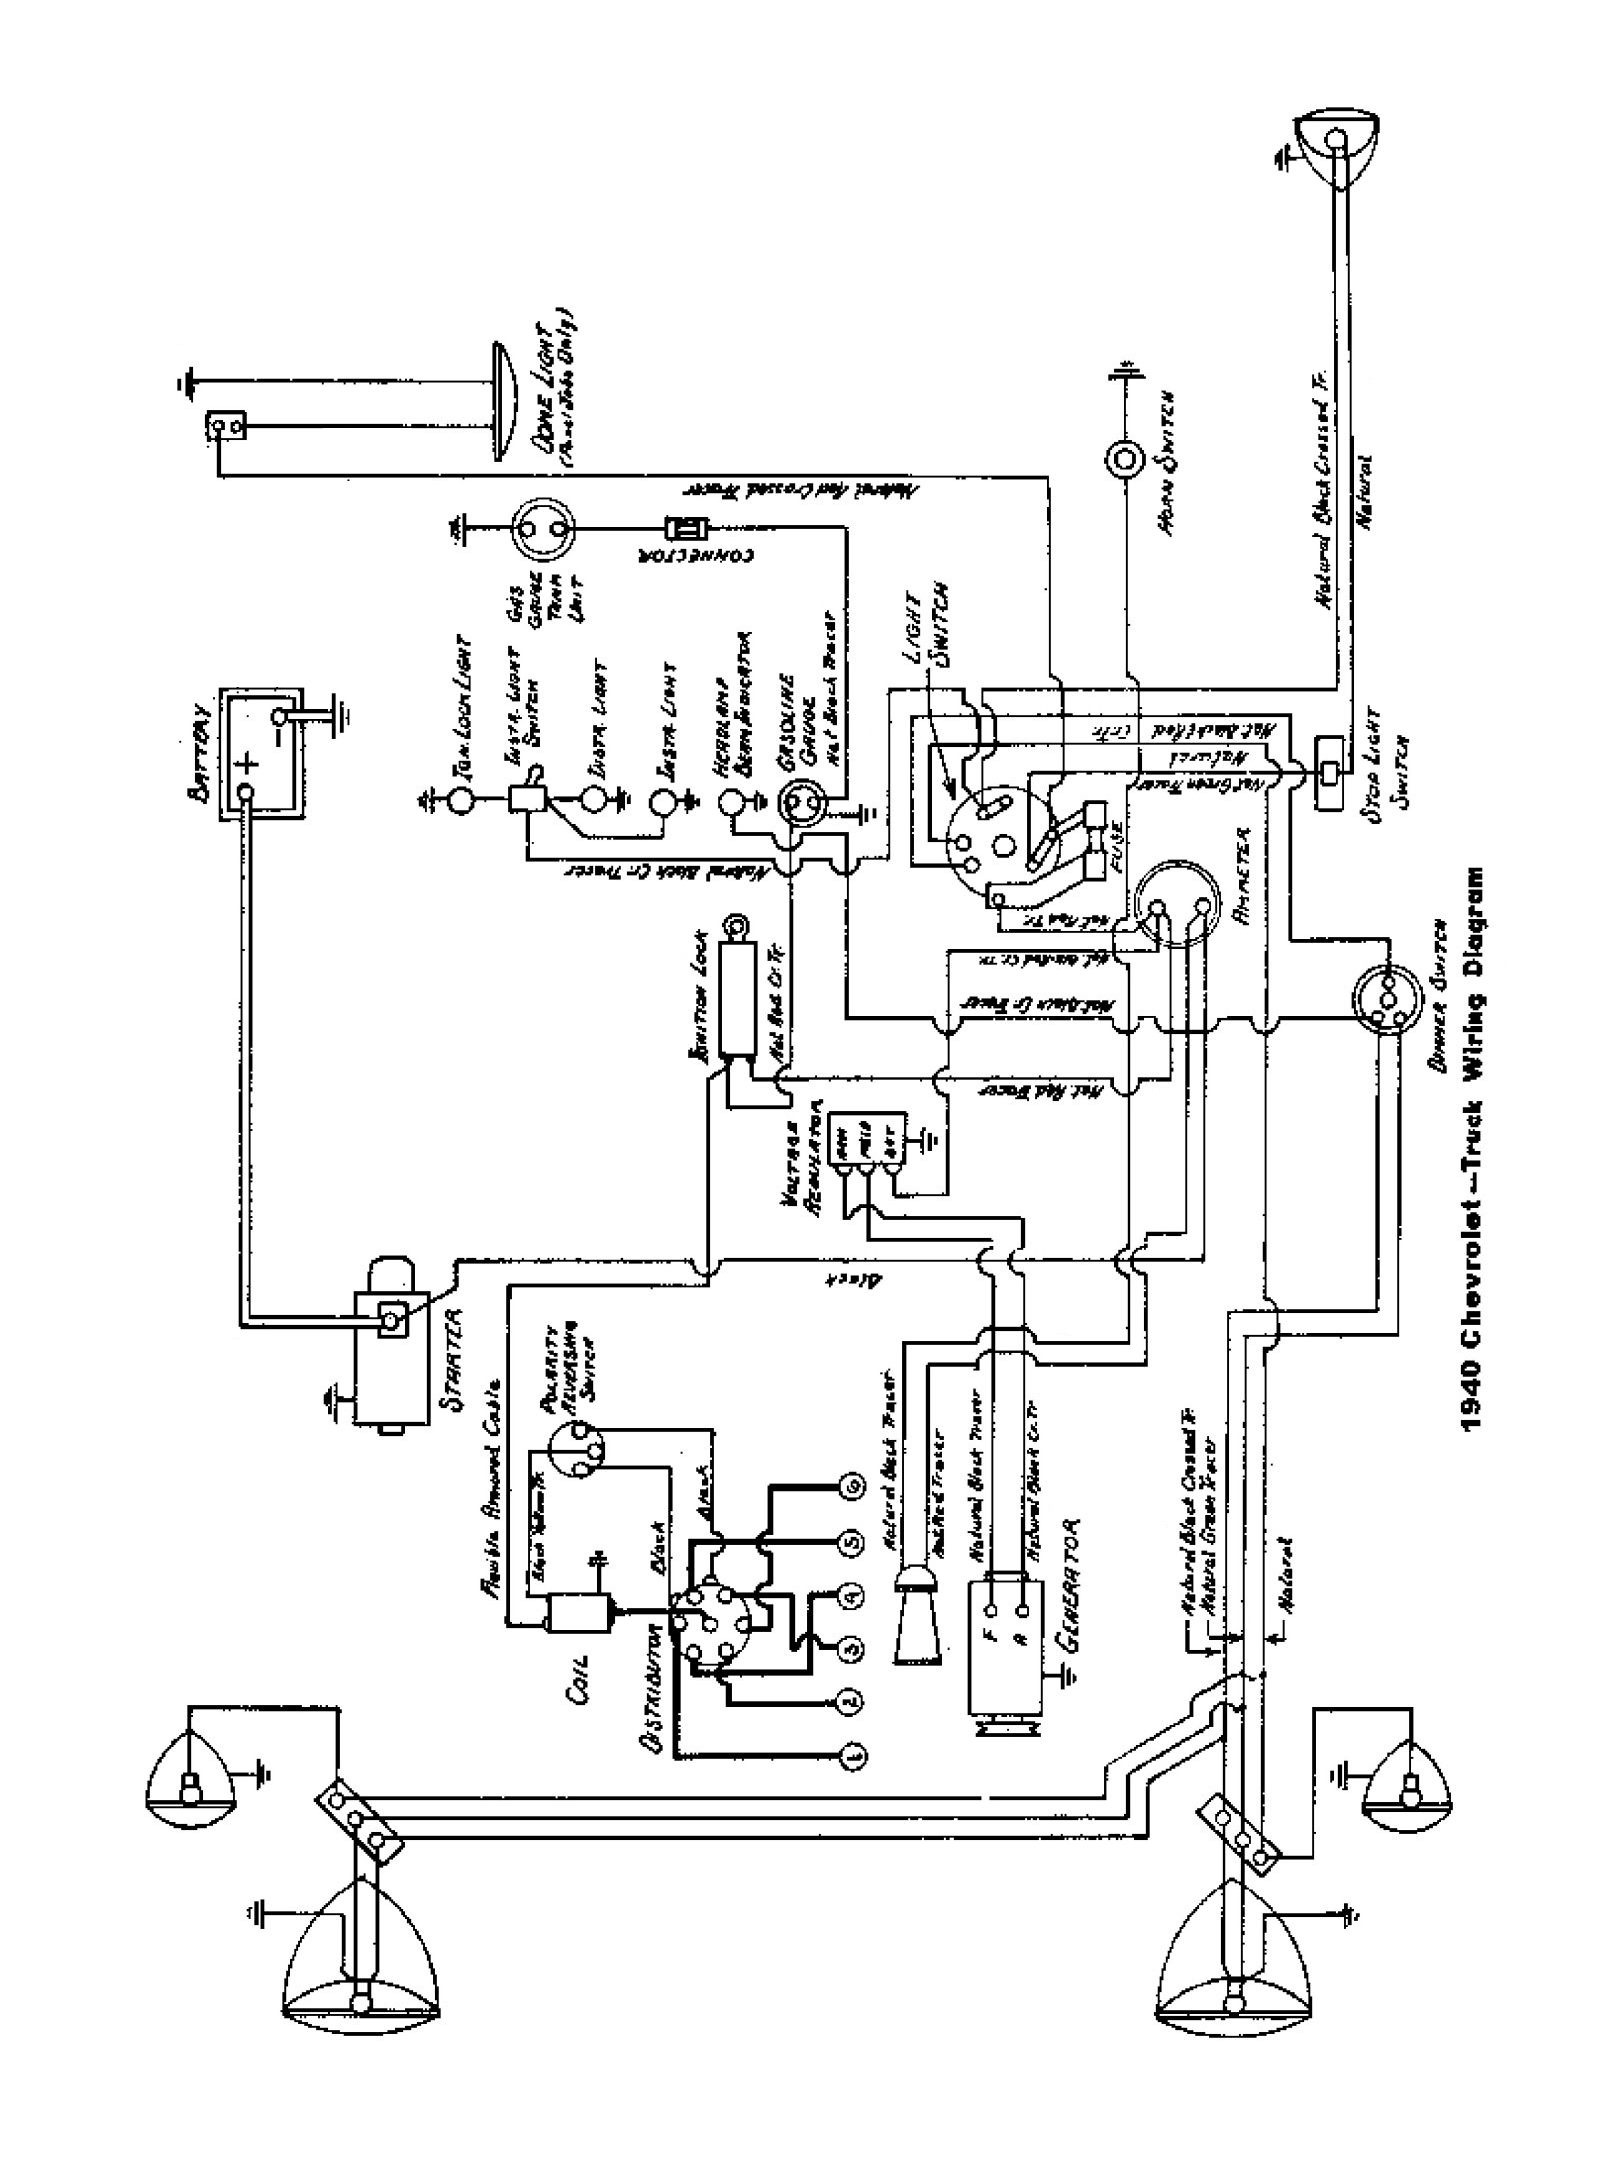 1953 chevy truck wiring diagram 1953 chevy truck ignition switch rh parsplus co 1957 Chevy Flasher 1957 chevy generator wiring